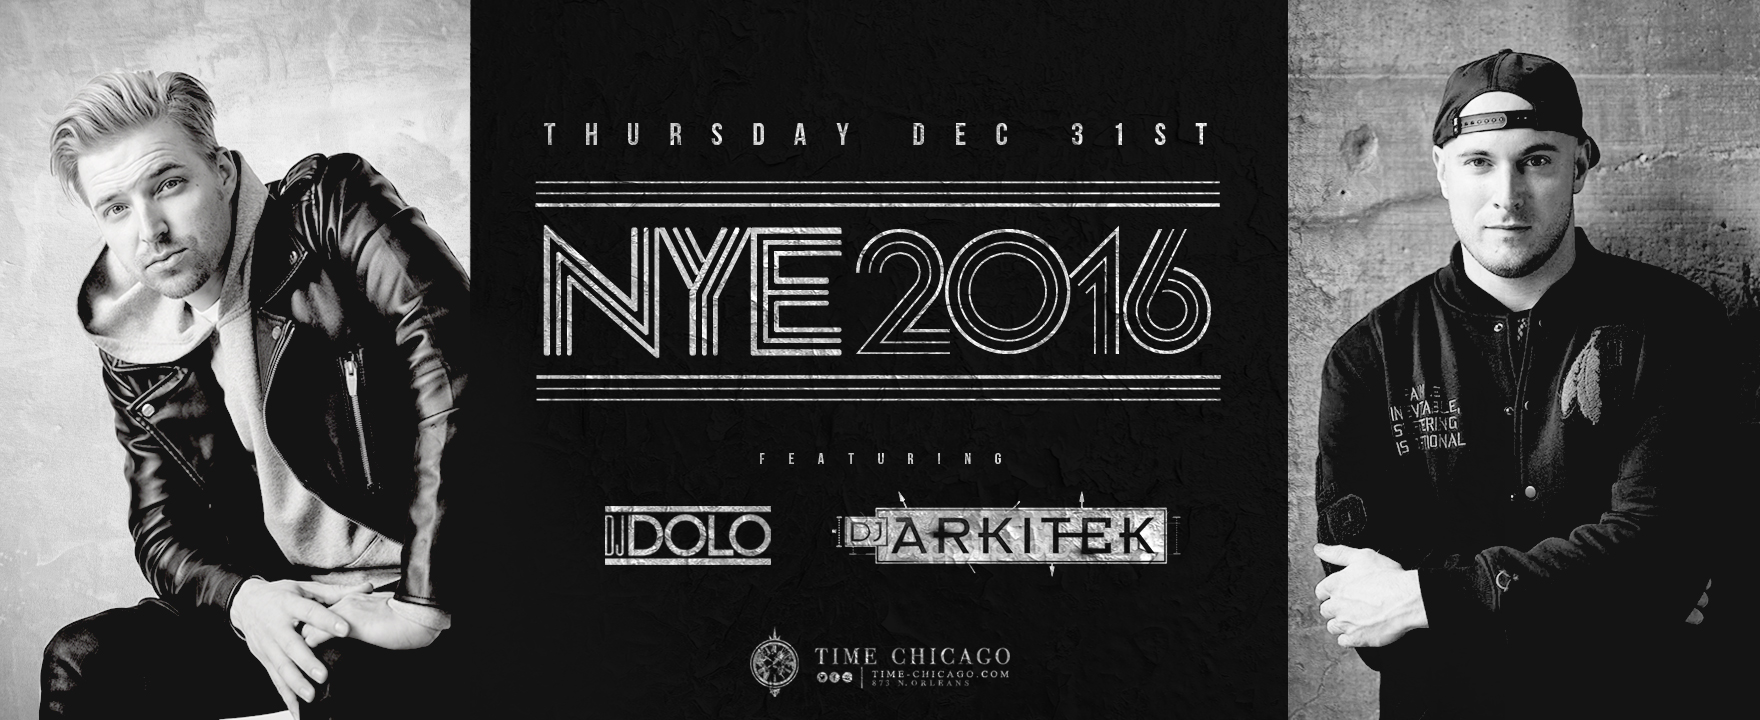 Time Chicago Presents: NYE 2016 ft. Dolo & Arkitek